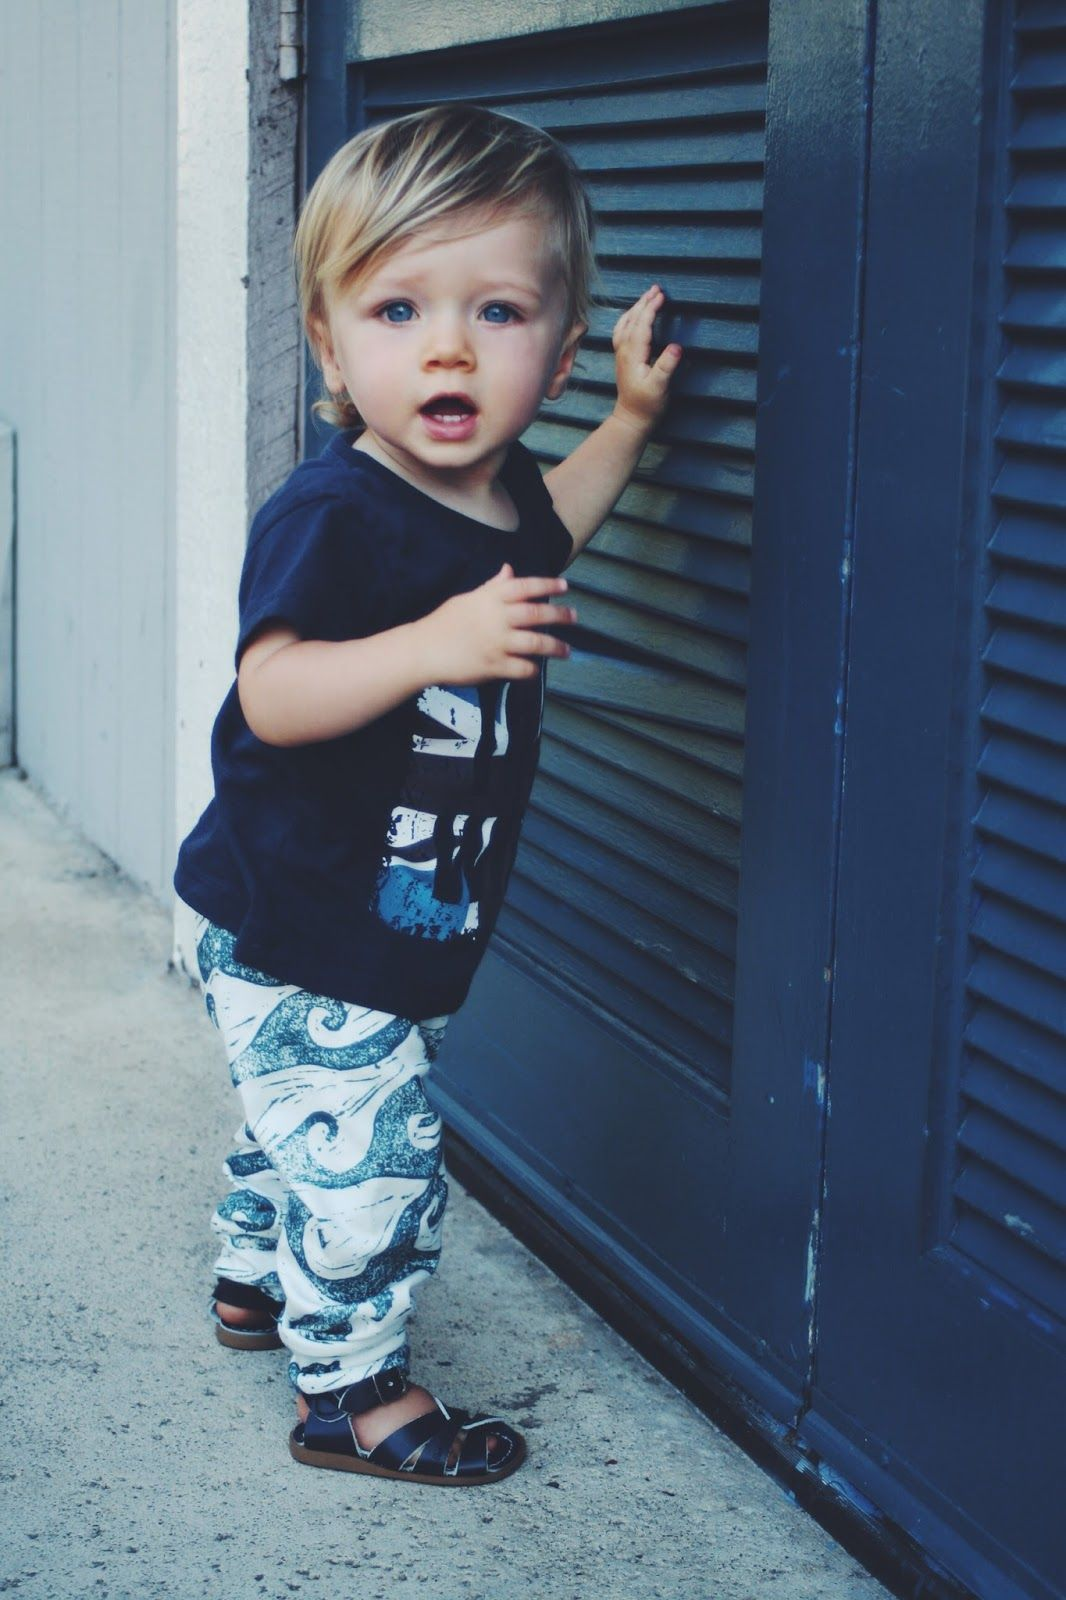 5c1a8af7d351d baby boy style, baby style, baby salt water sandals, toddler style, baby  fashion, baby leggings, organic baby clothes, toddler fashion, organic,  band tee, ...